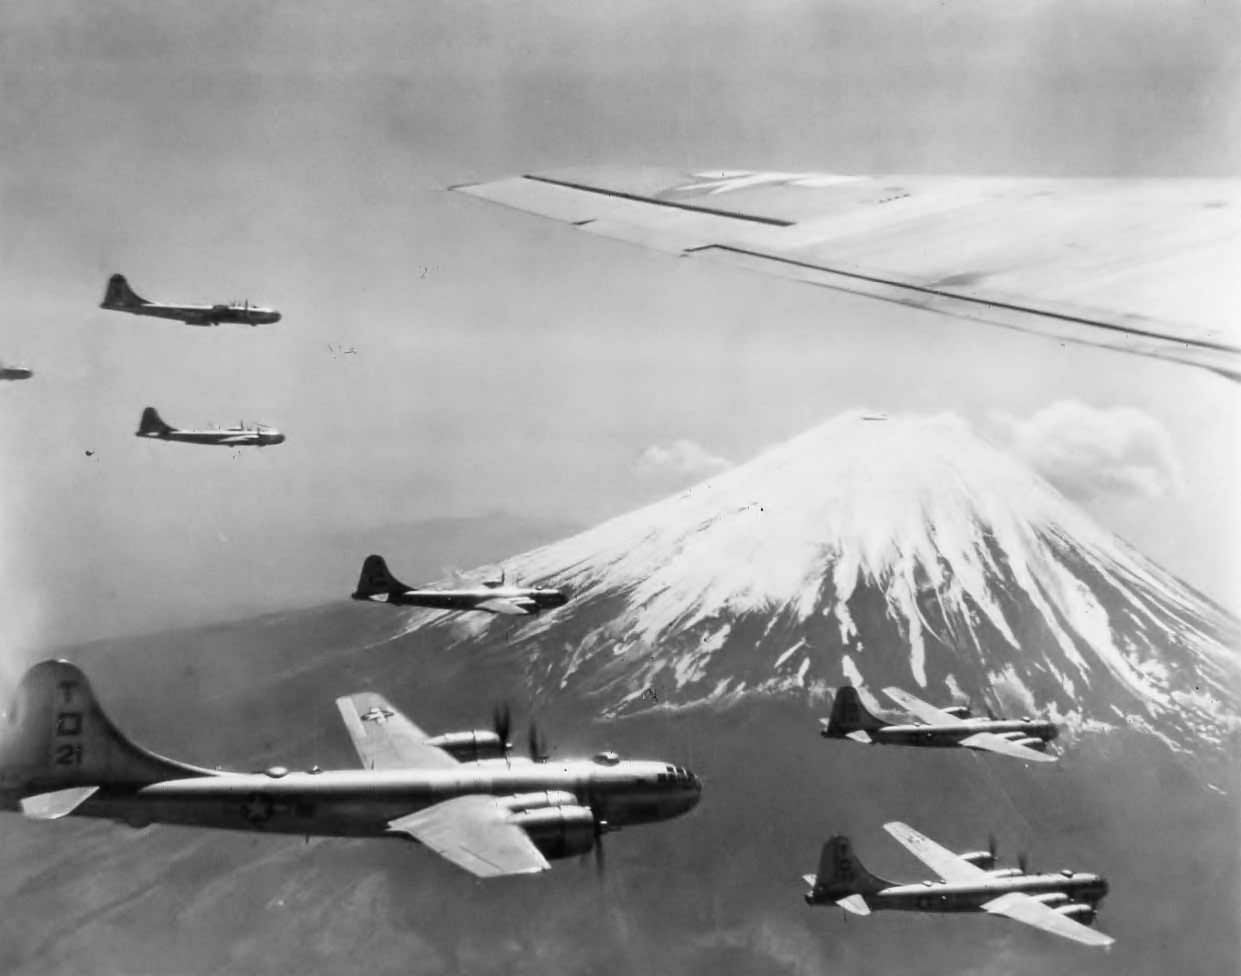 Boeing B-29 498th Bomb Group Bombers Flying Over Mount Fuji Japan